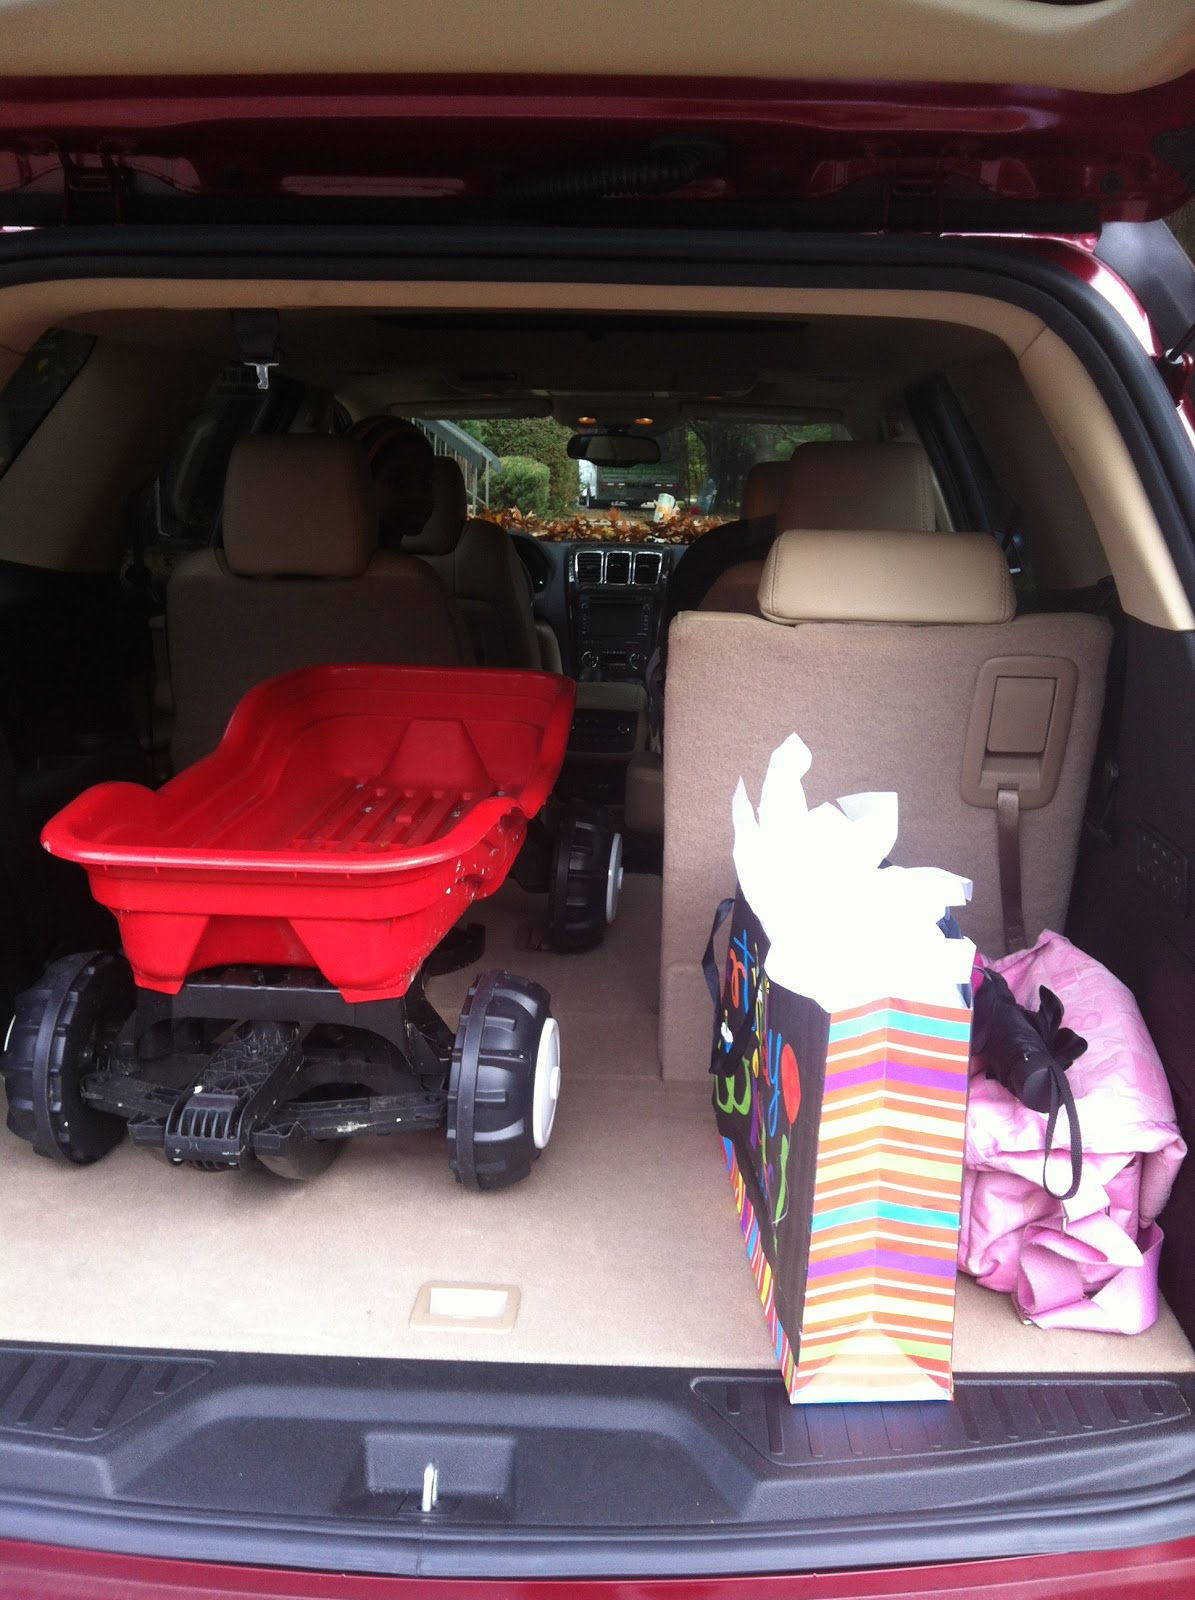 Fine 2012 Gmc Acadia Denali A Frugal Review 4 Hats And Frugal Short Links Chair Design For Home Short Linksinfo